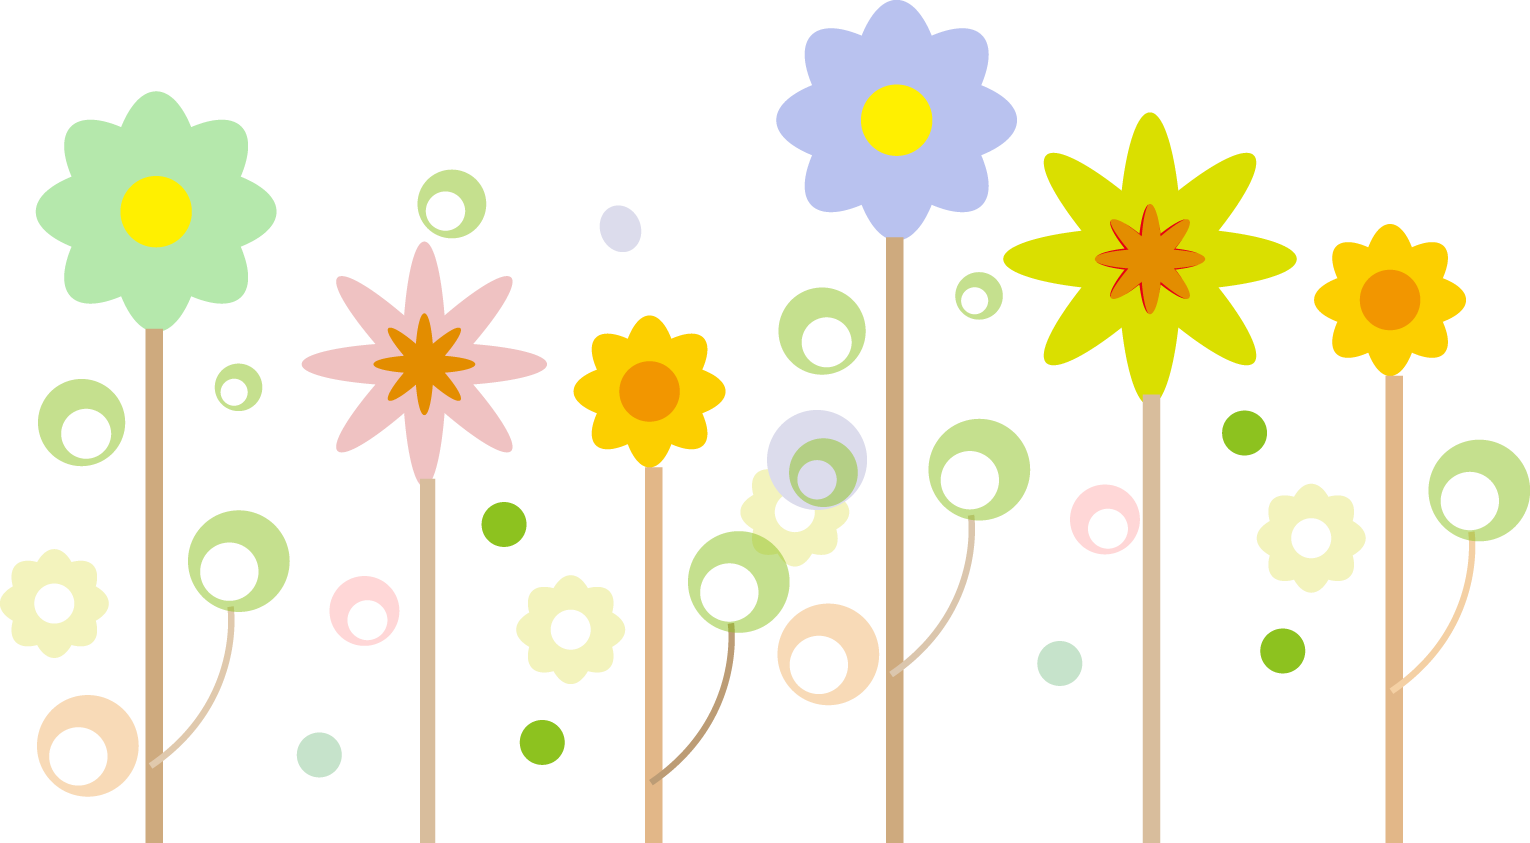 Cute flower png. Transparent pictures free icons